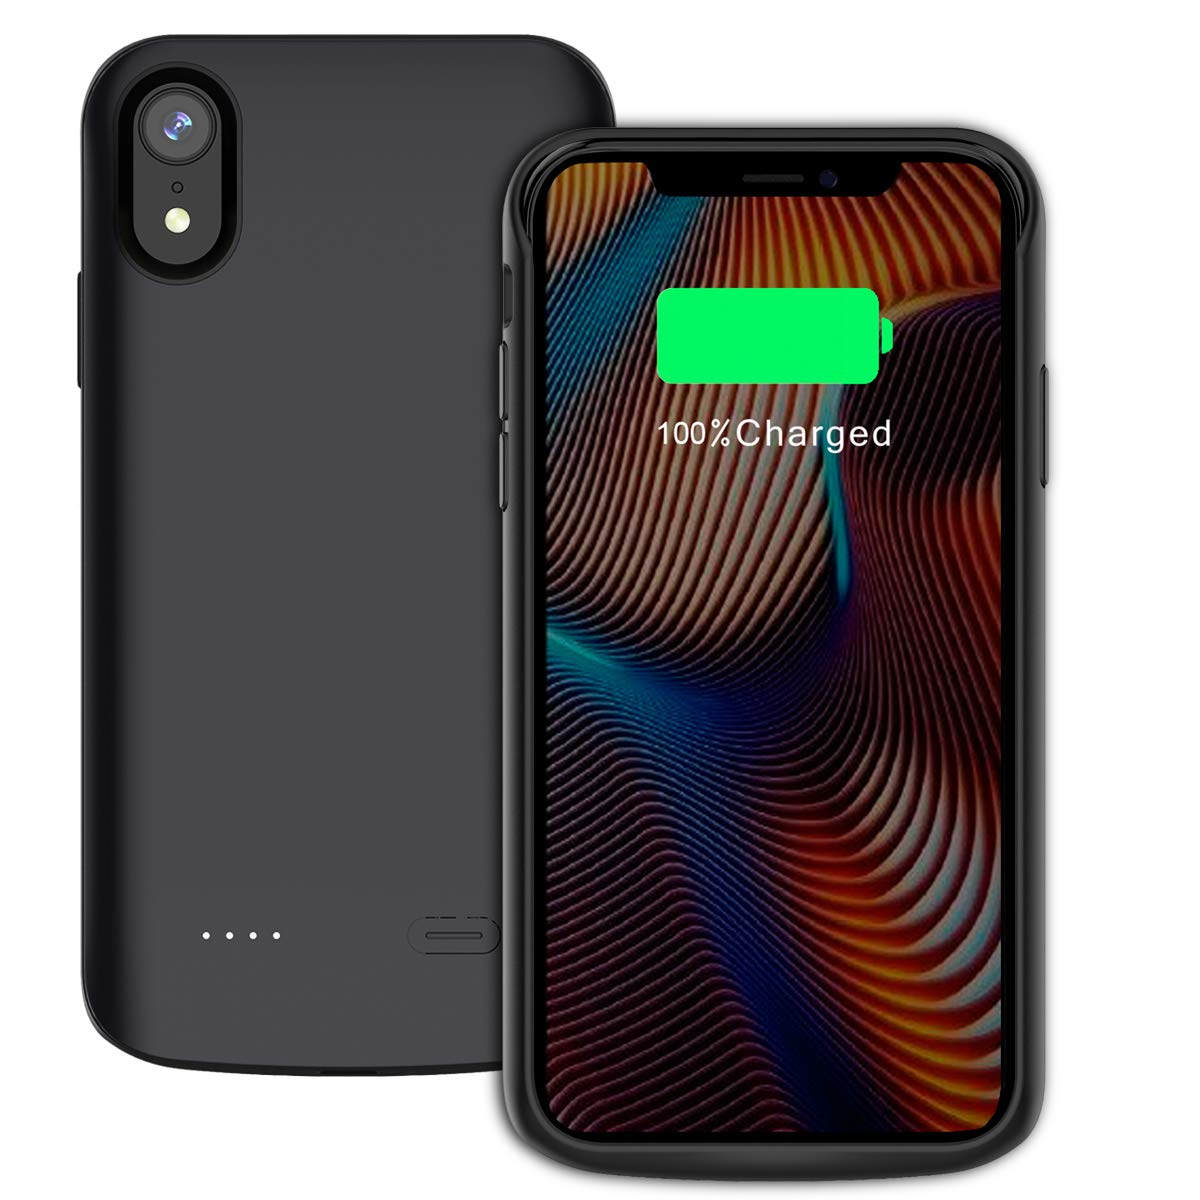 Torubia iPhone Xr 6000mAh Battery Case, Cellphone Case Battery Charger Case Cover, Cellphone Case Battery Charging Case with Cellphone Case Compatible with iPhone Xr 6000mAh